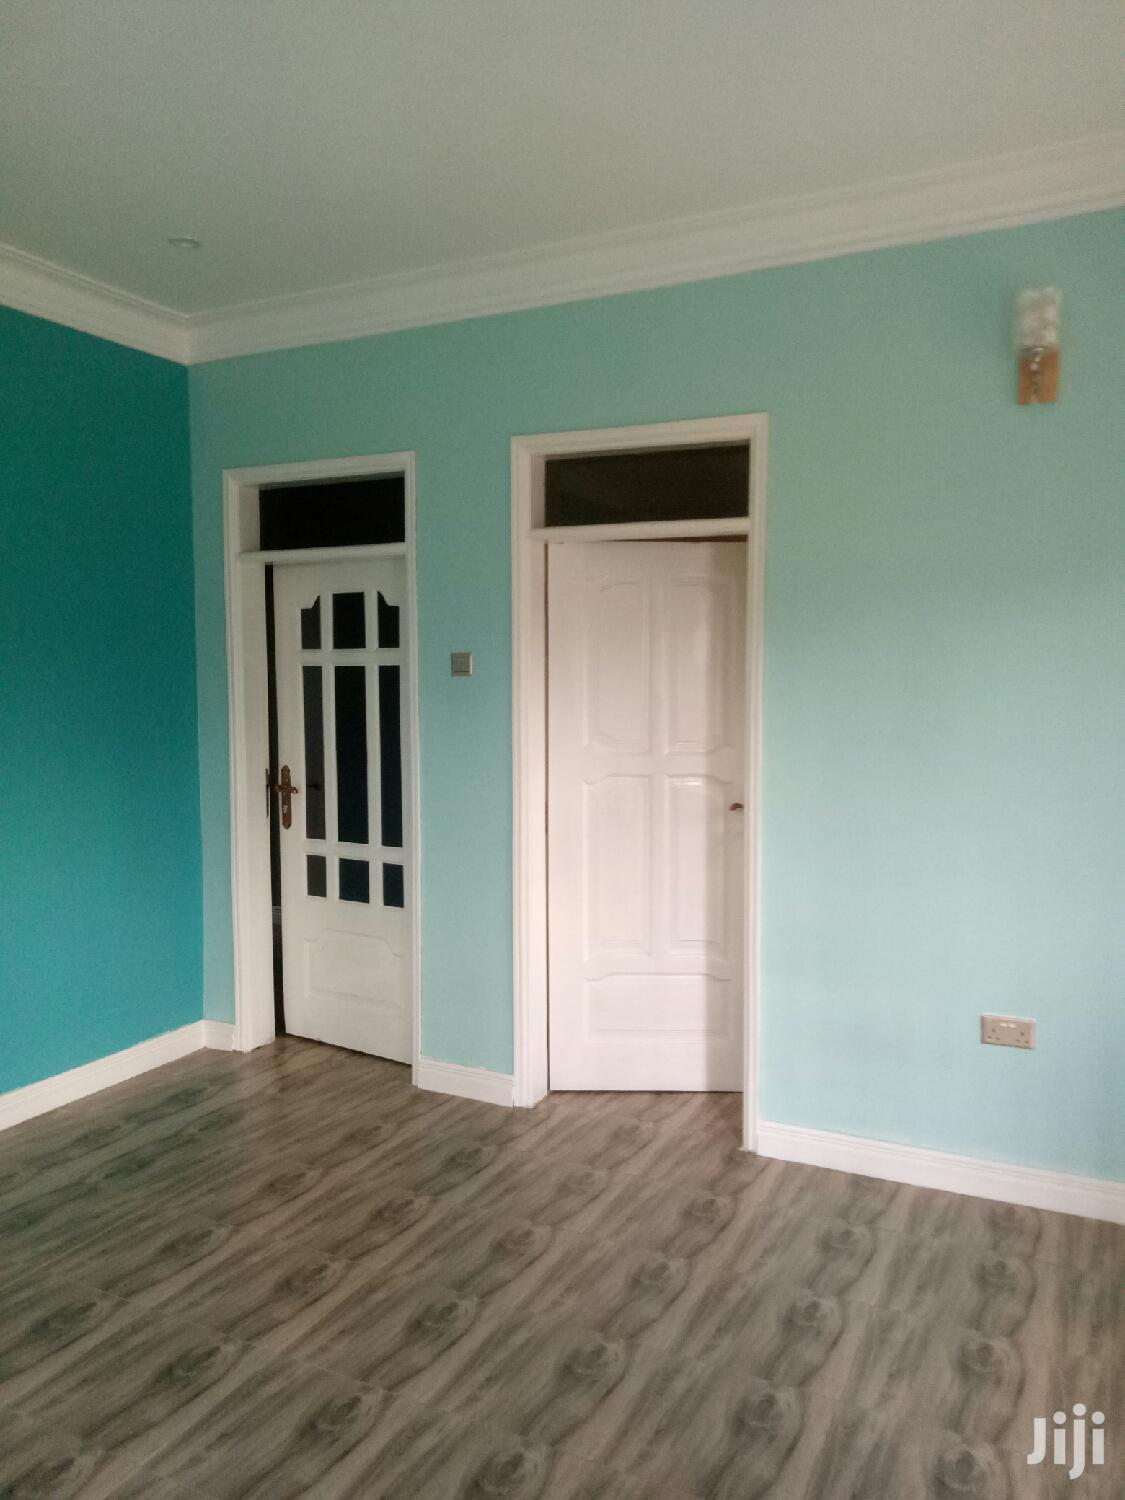 Archive: Kiwatule Double Room Self Contained at 300k